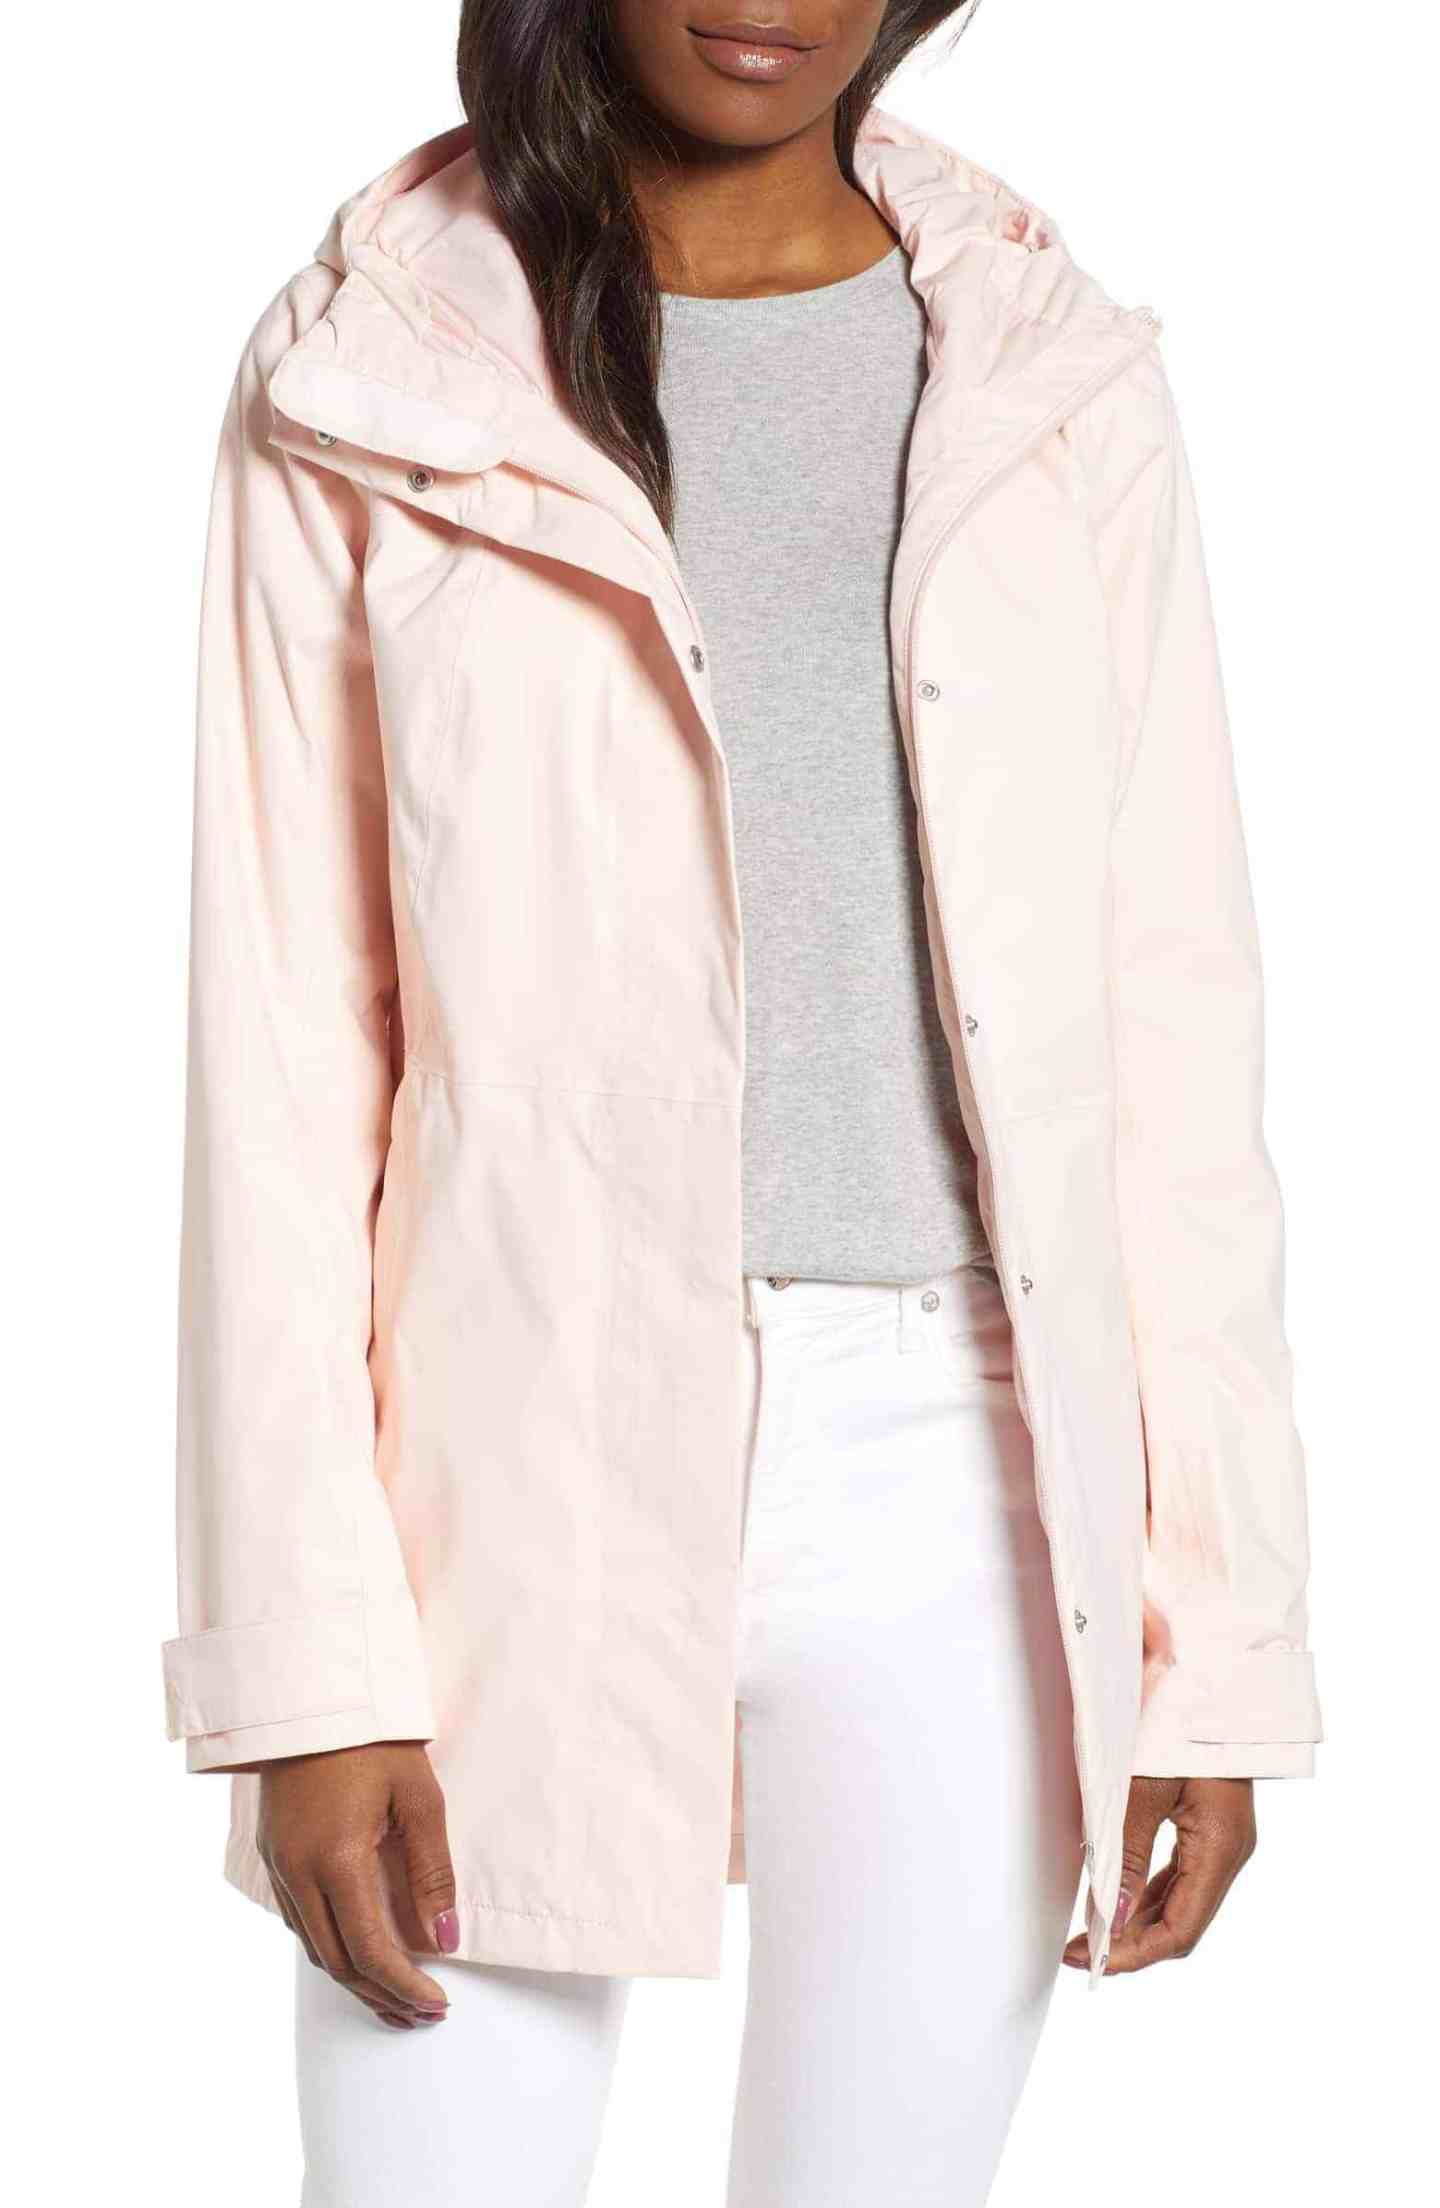 North Face Midi Trench Coat